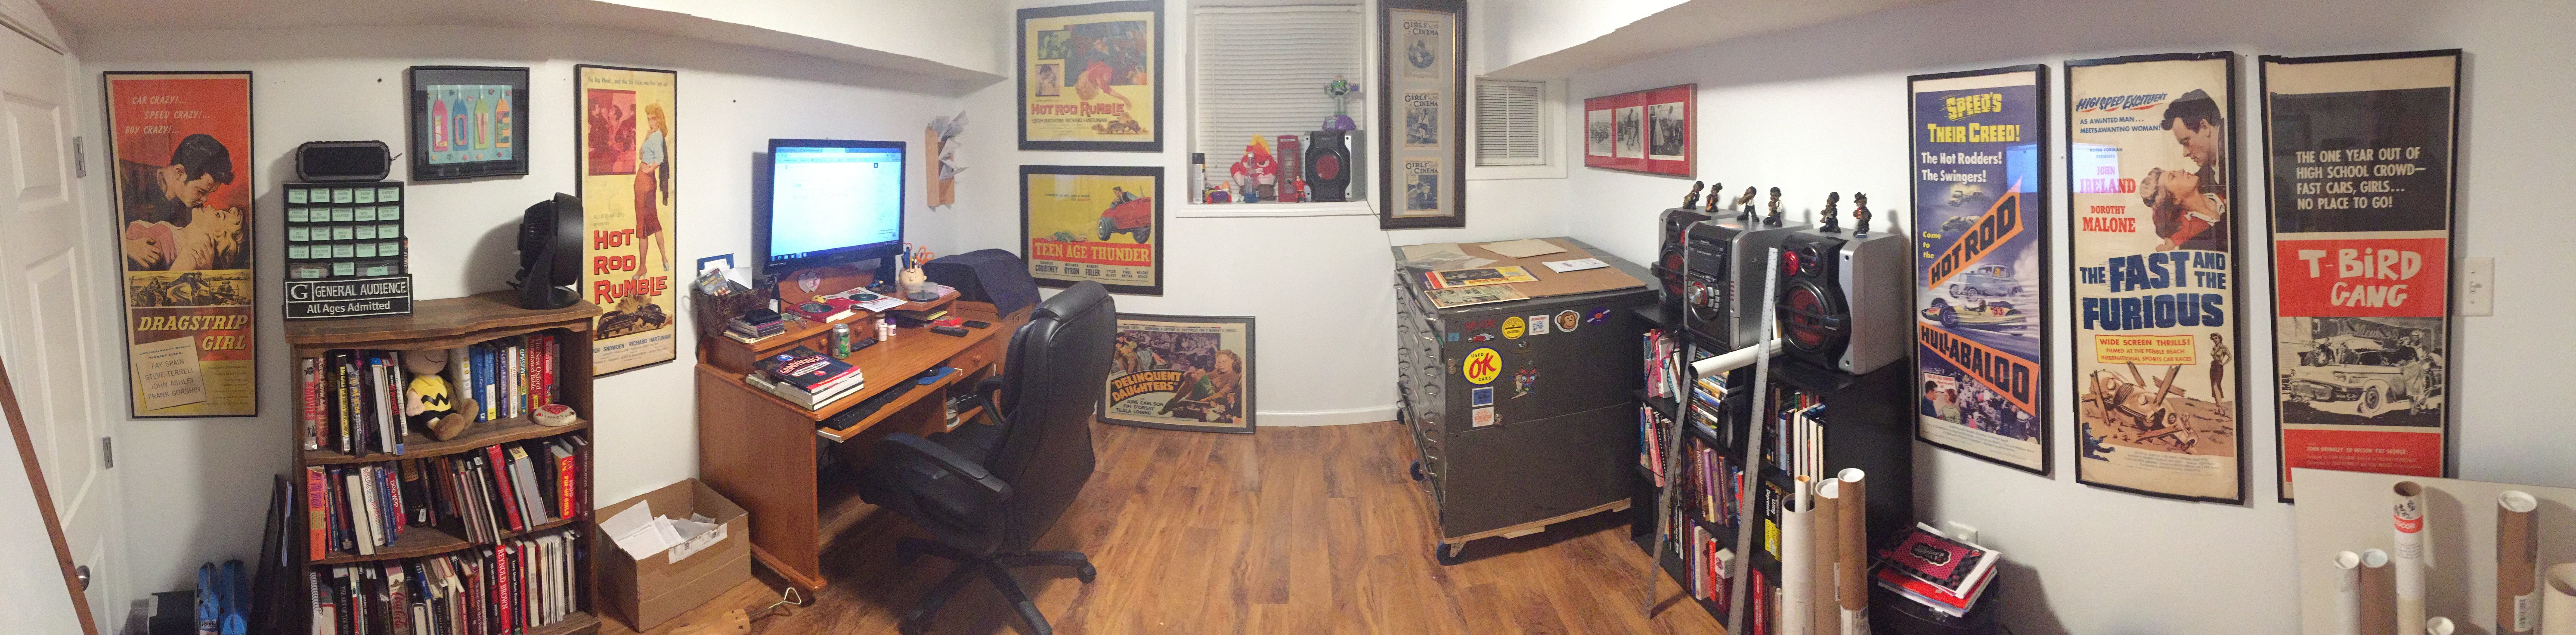 poster lair 2-19